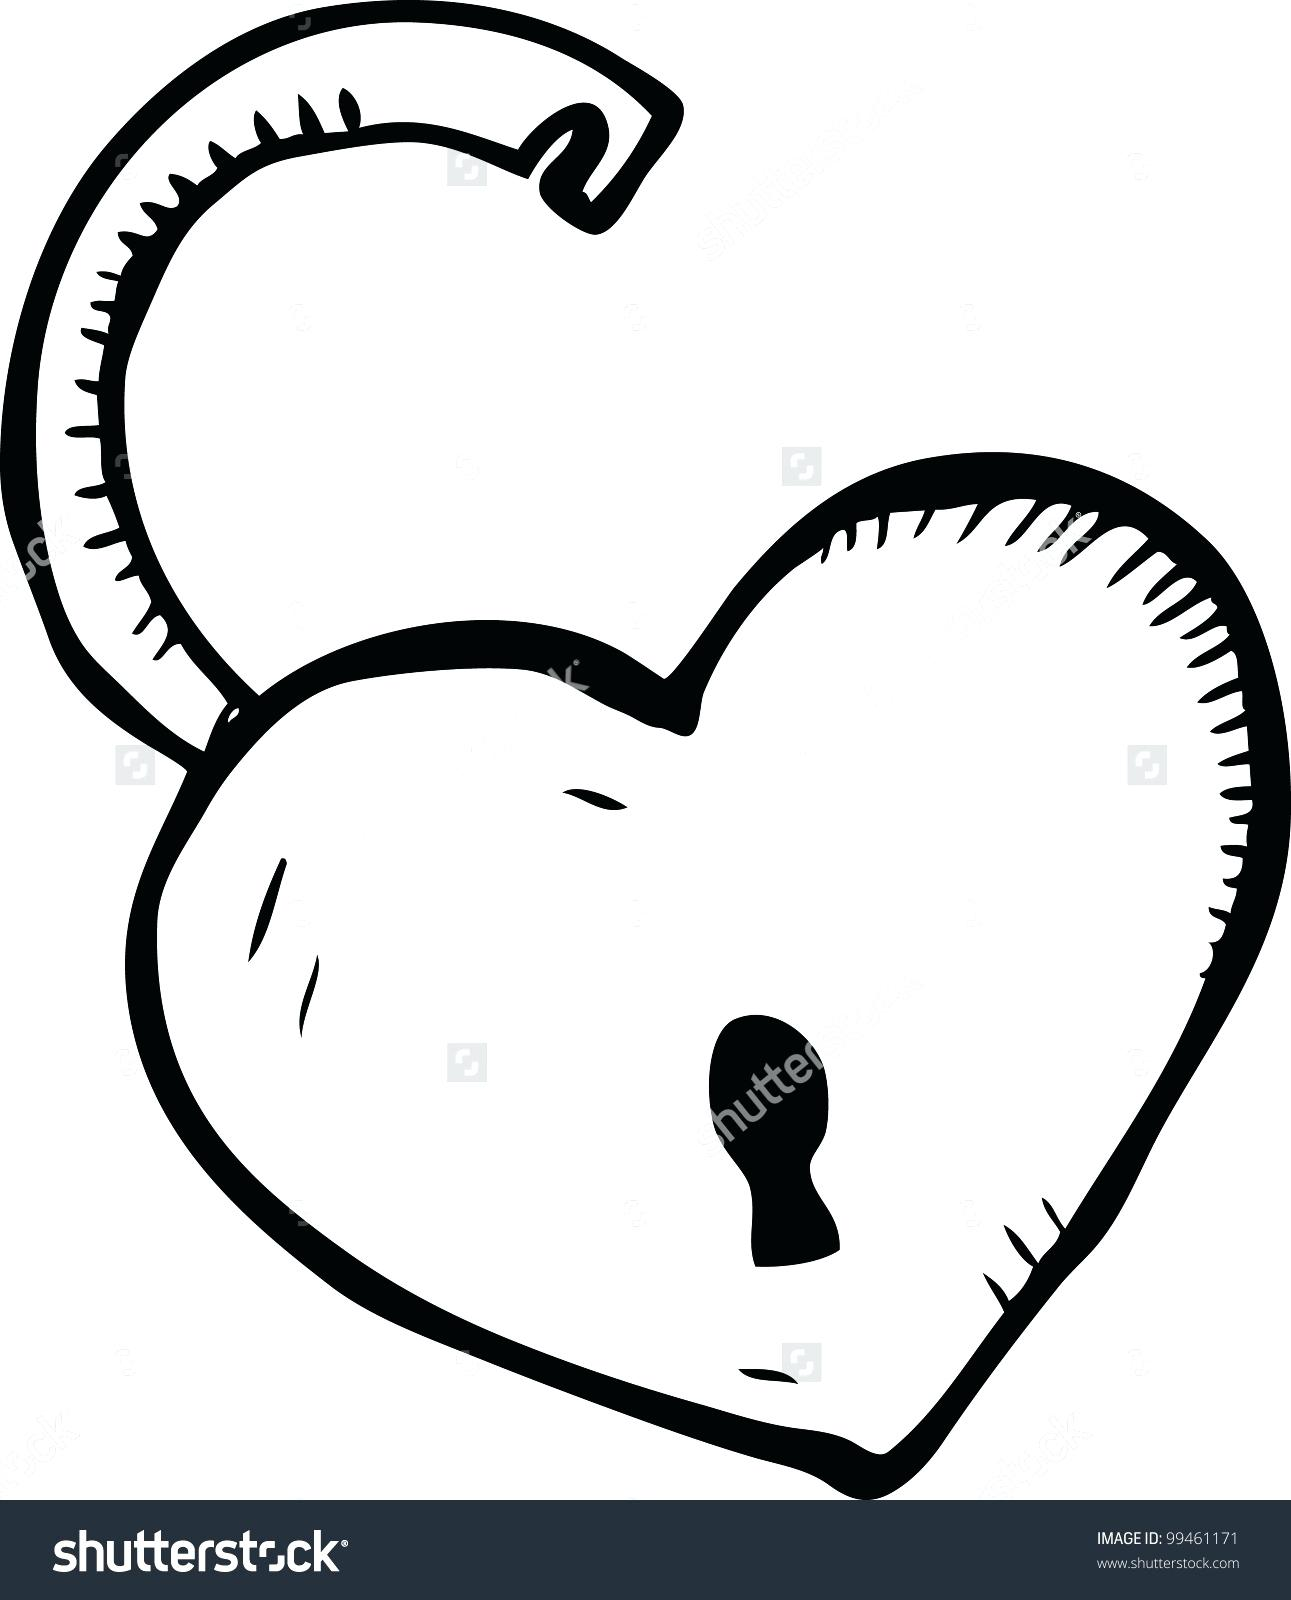 Line Art Heart Shape : Heart shape line drawing at getdrawings free for